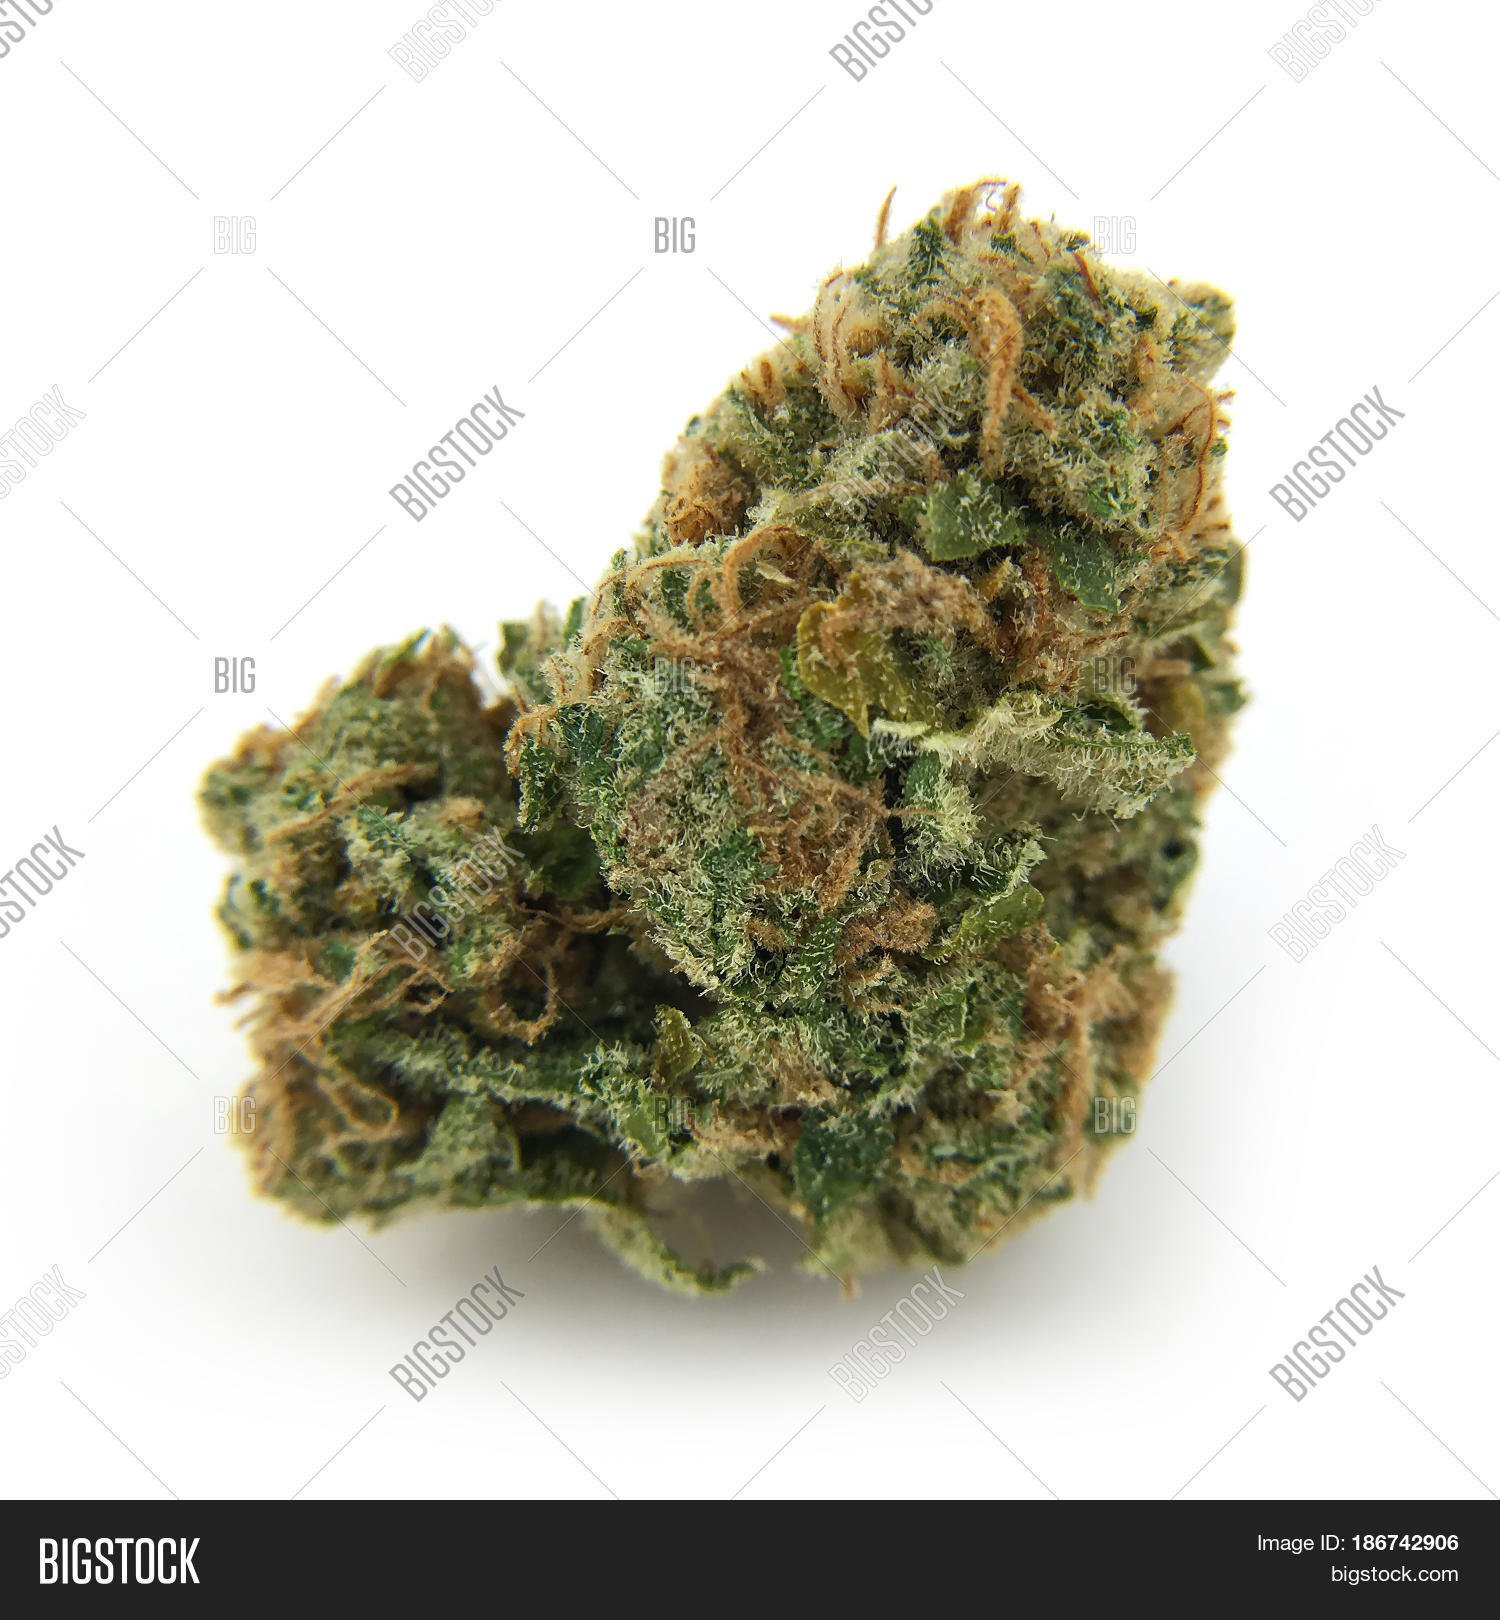 Dried Cannabis Flower Image Photo Free Trial Bigstock